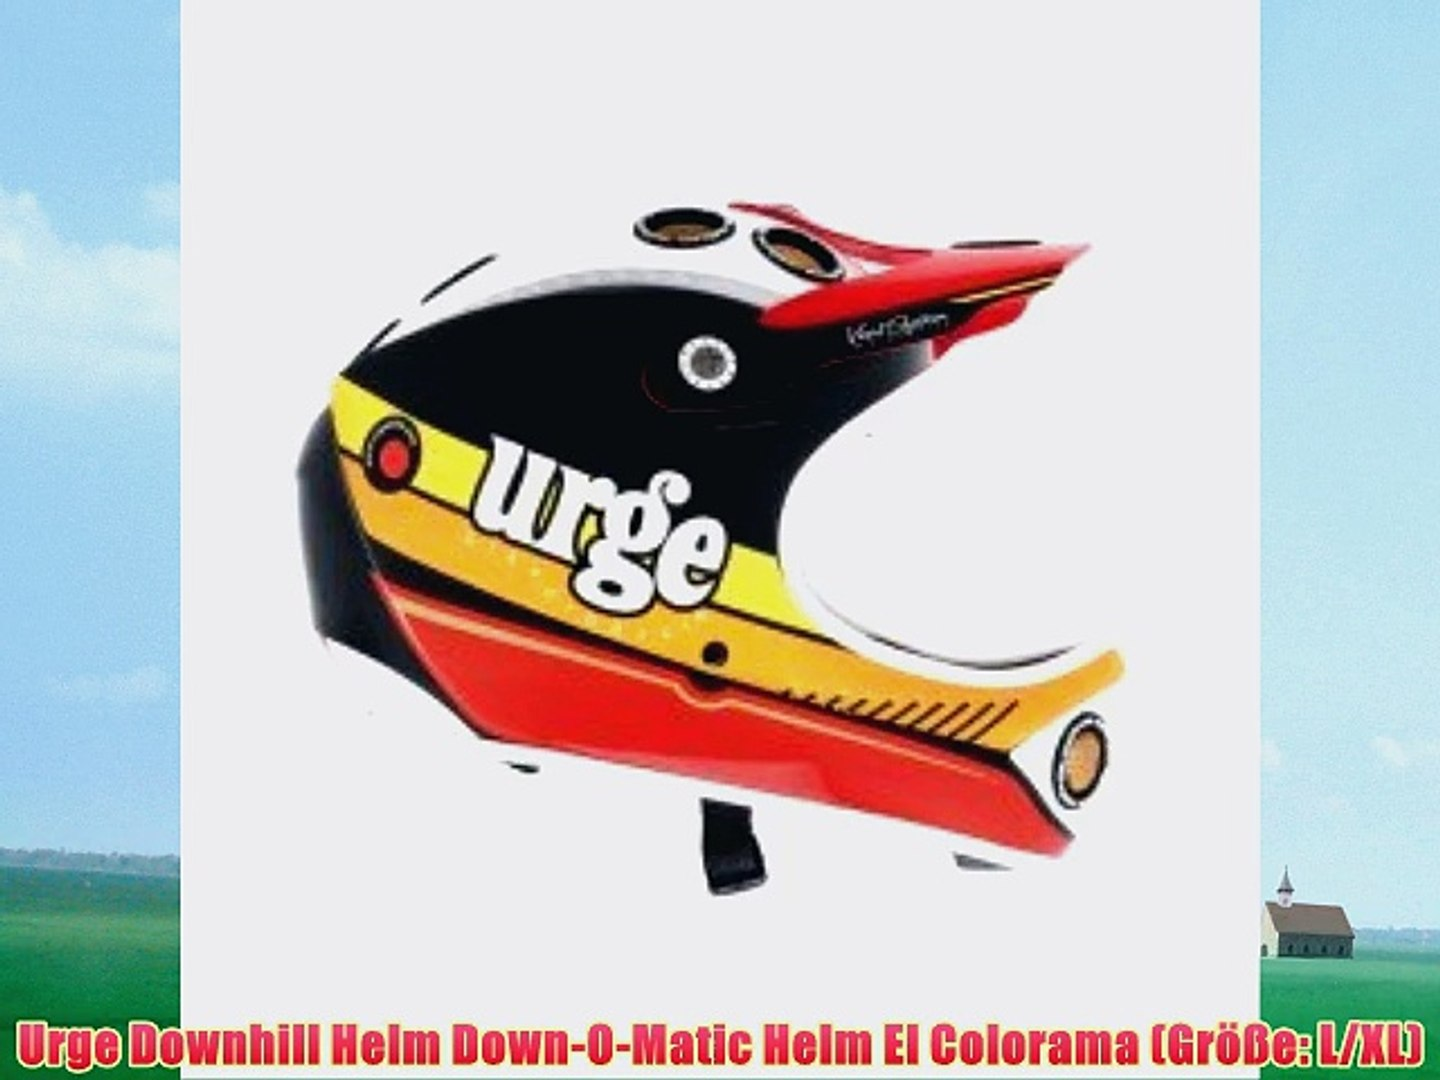 Urge Downhill Helm Down-O-Matic Helm El Colorama (Gr??e: L/XL)